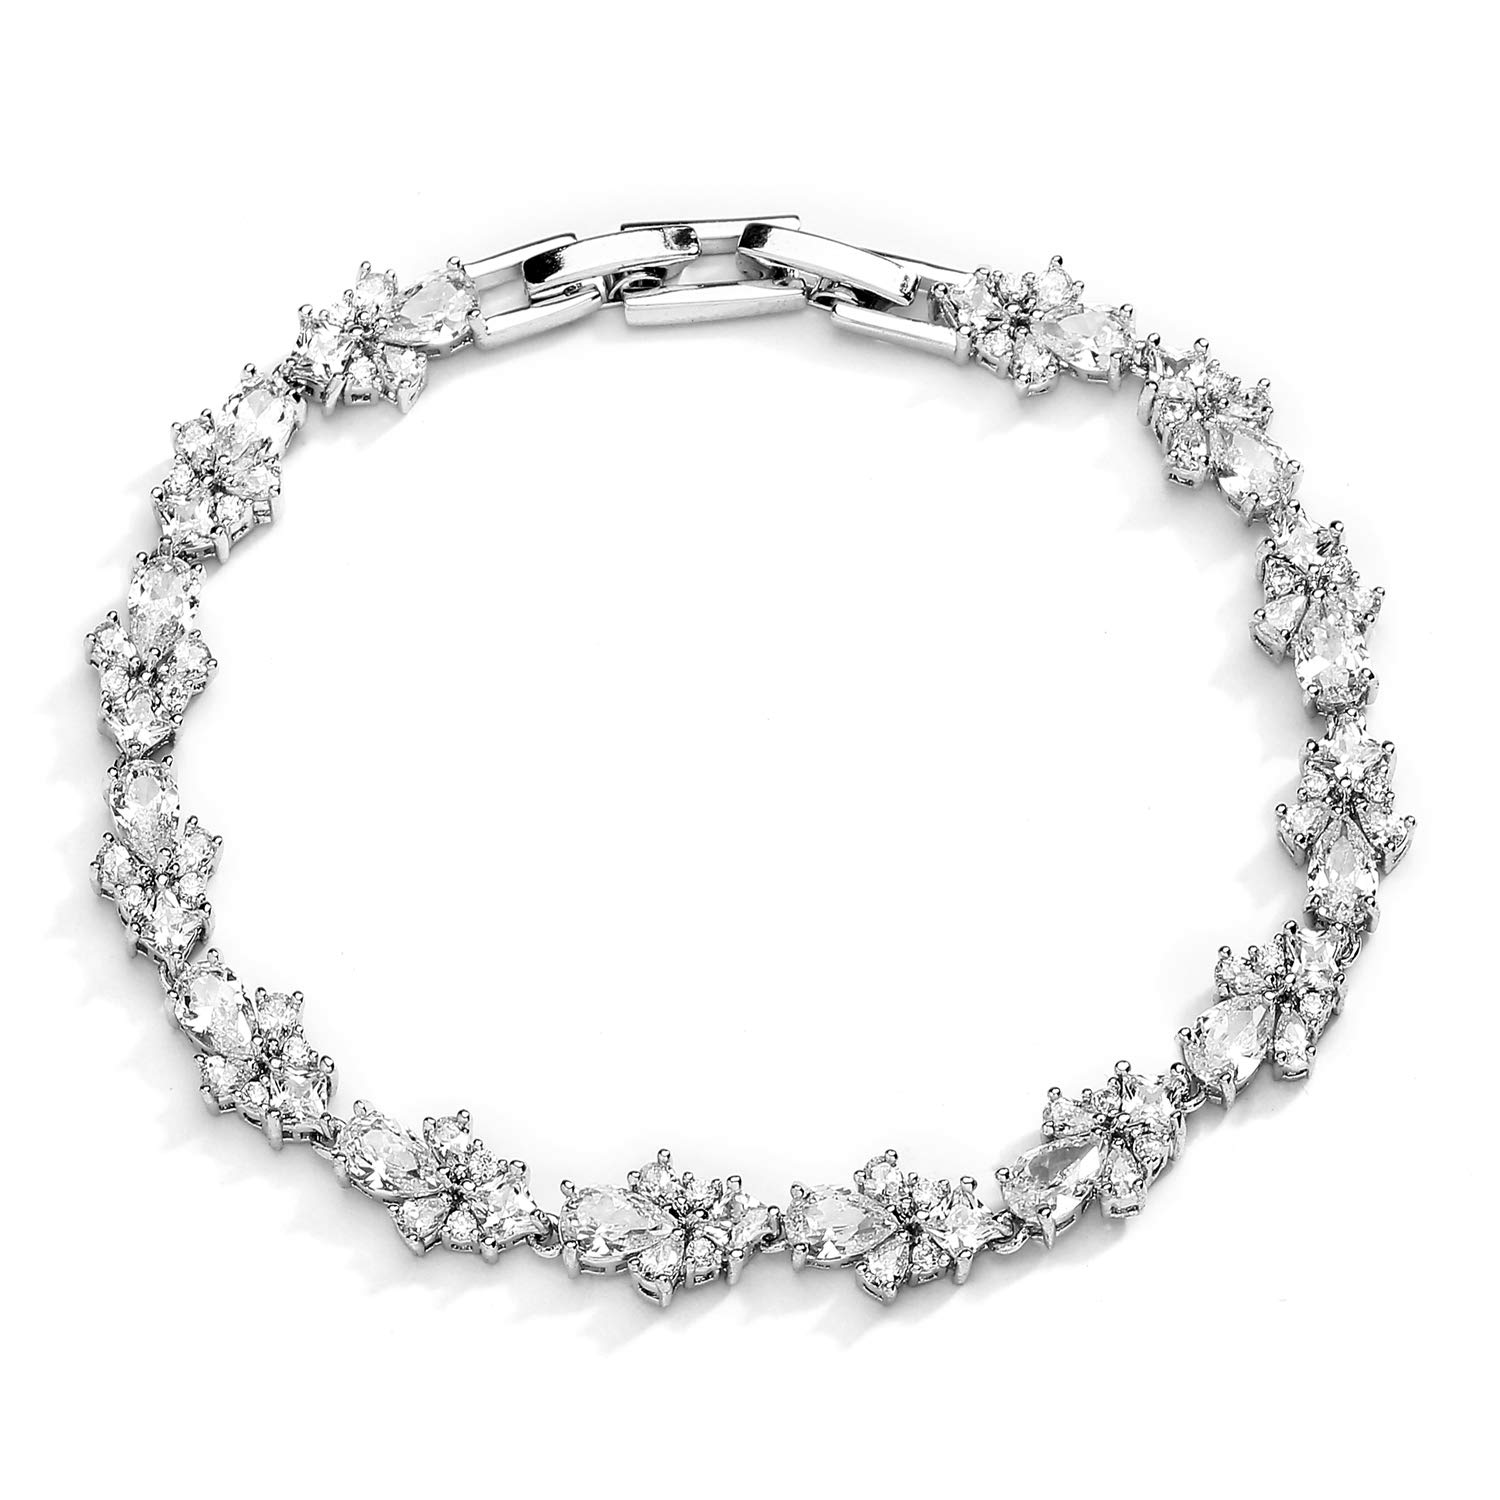 Mariell CZ Wedding Bridal & Prom Tennis Bracelet for Women, Silver Platinum Plated, 7'' Plus ¼ Extender by Mariell